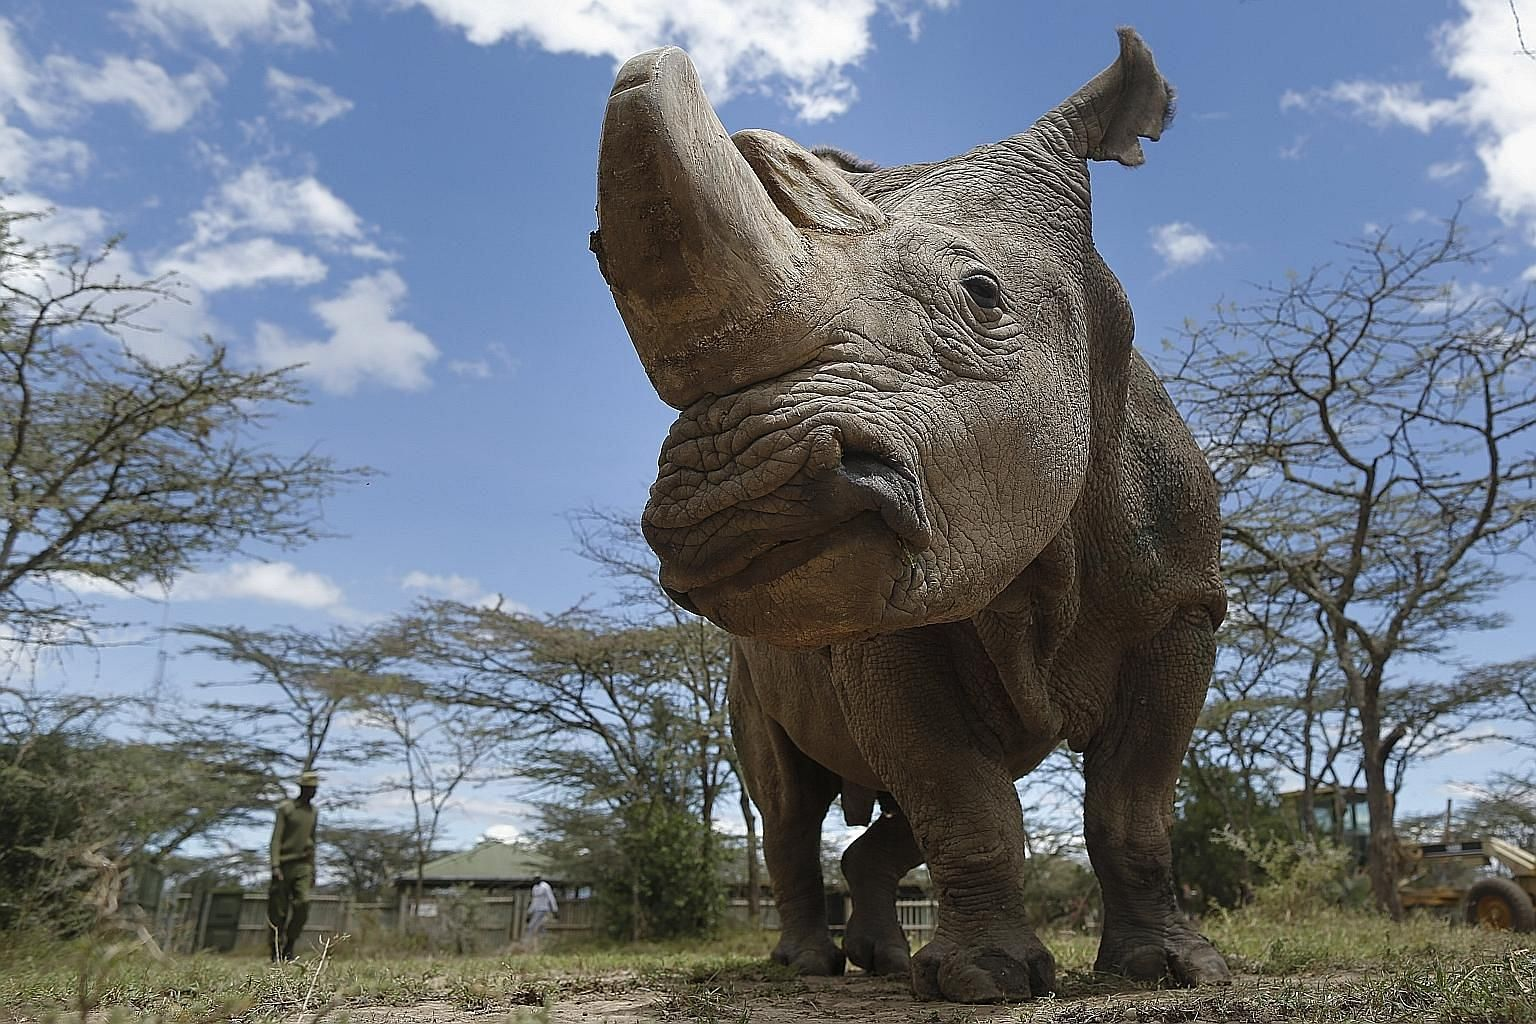 The last surviving male northern white rhino on Earth (above) died in Kenya on March 19, meaning just two females are left. Thousands of species of wildlife sit on the verge of extinction because of human actions. Technological advancements are dwarf